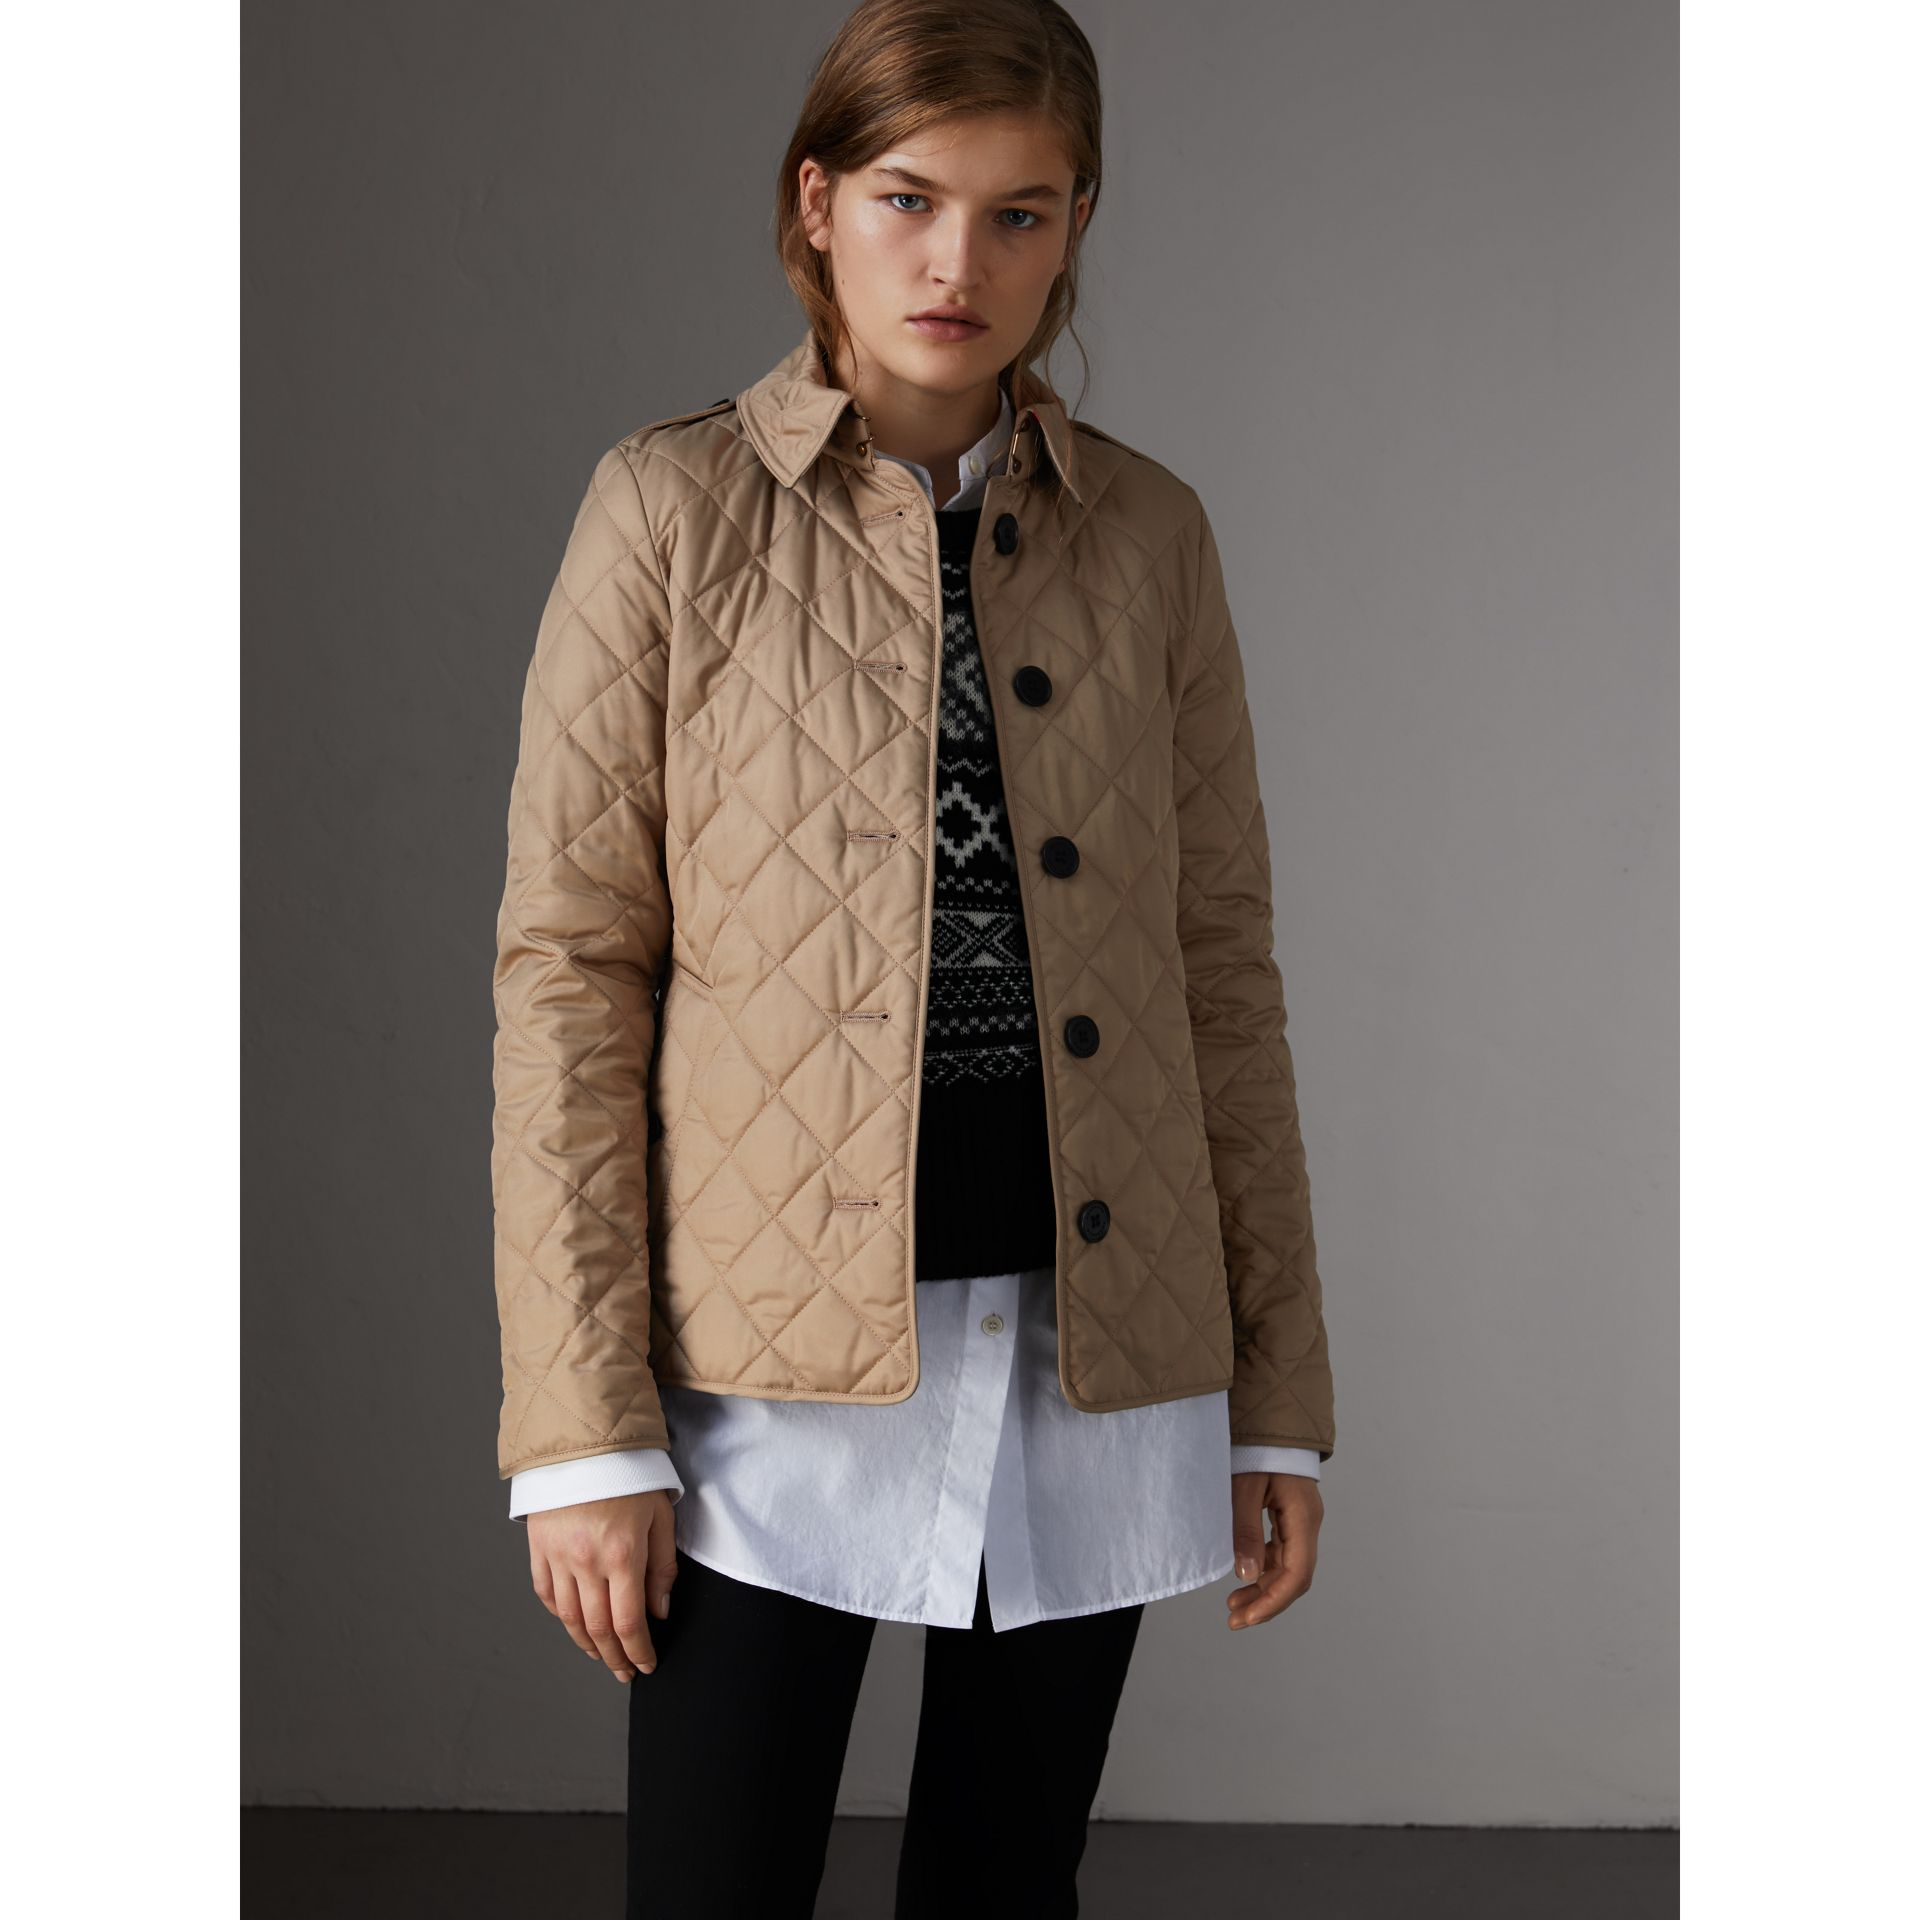 Jacke in Rautensteppung (Canvas) - Damen | Burberry - Galerie-Bild 0